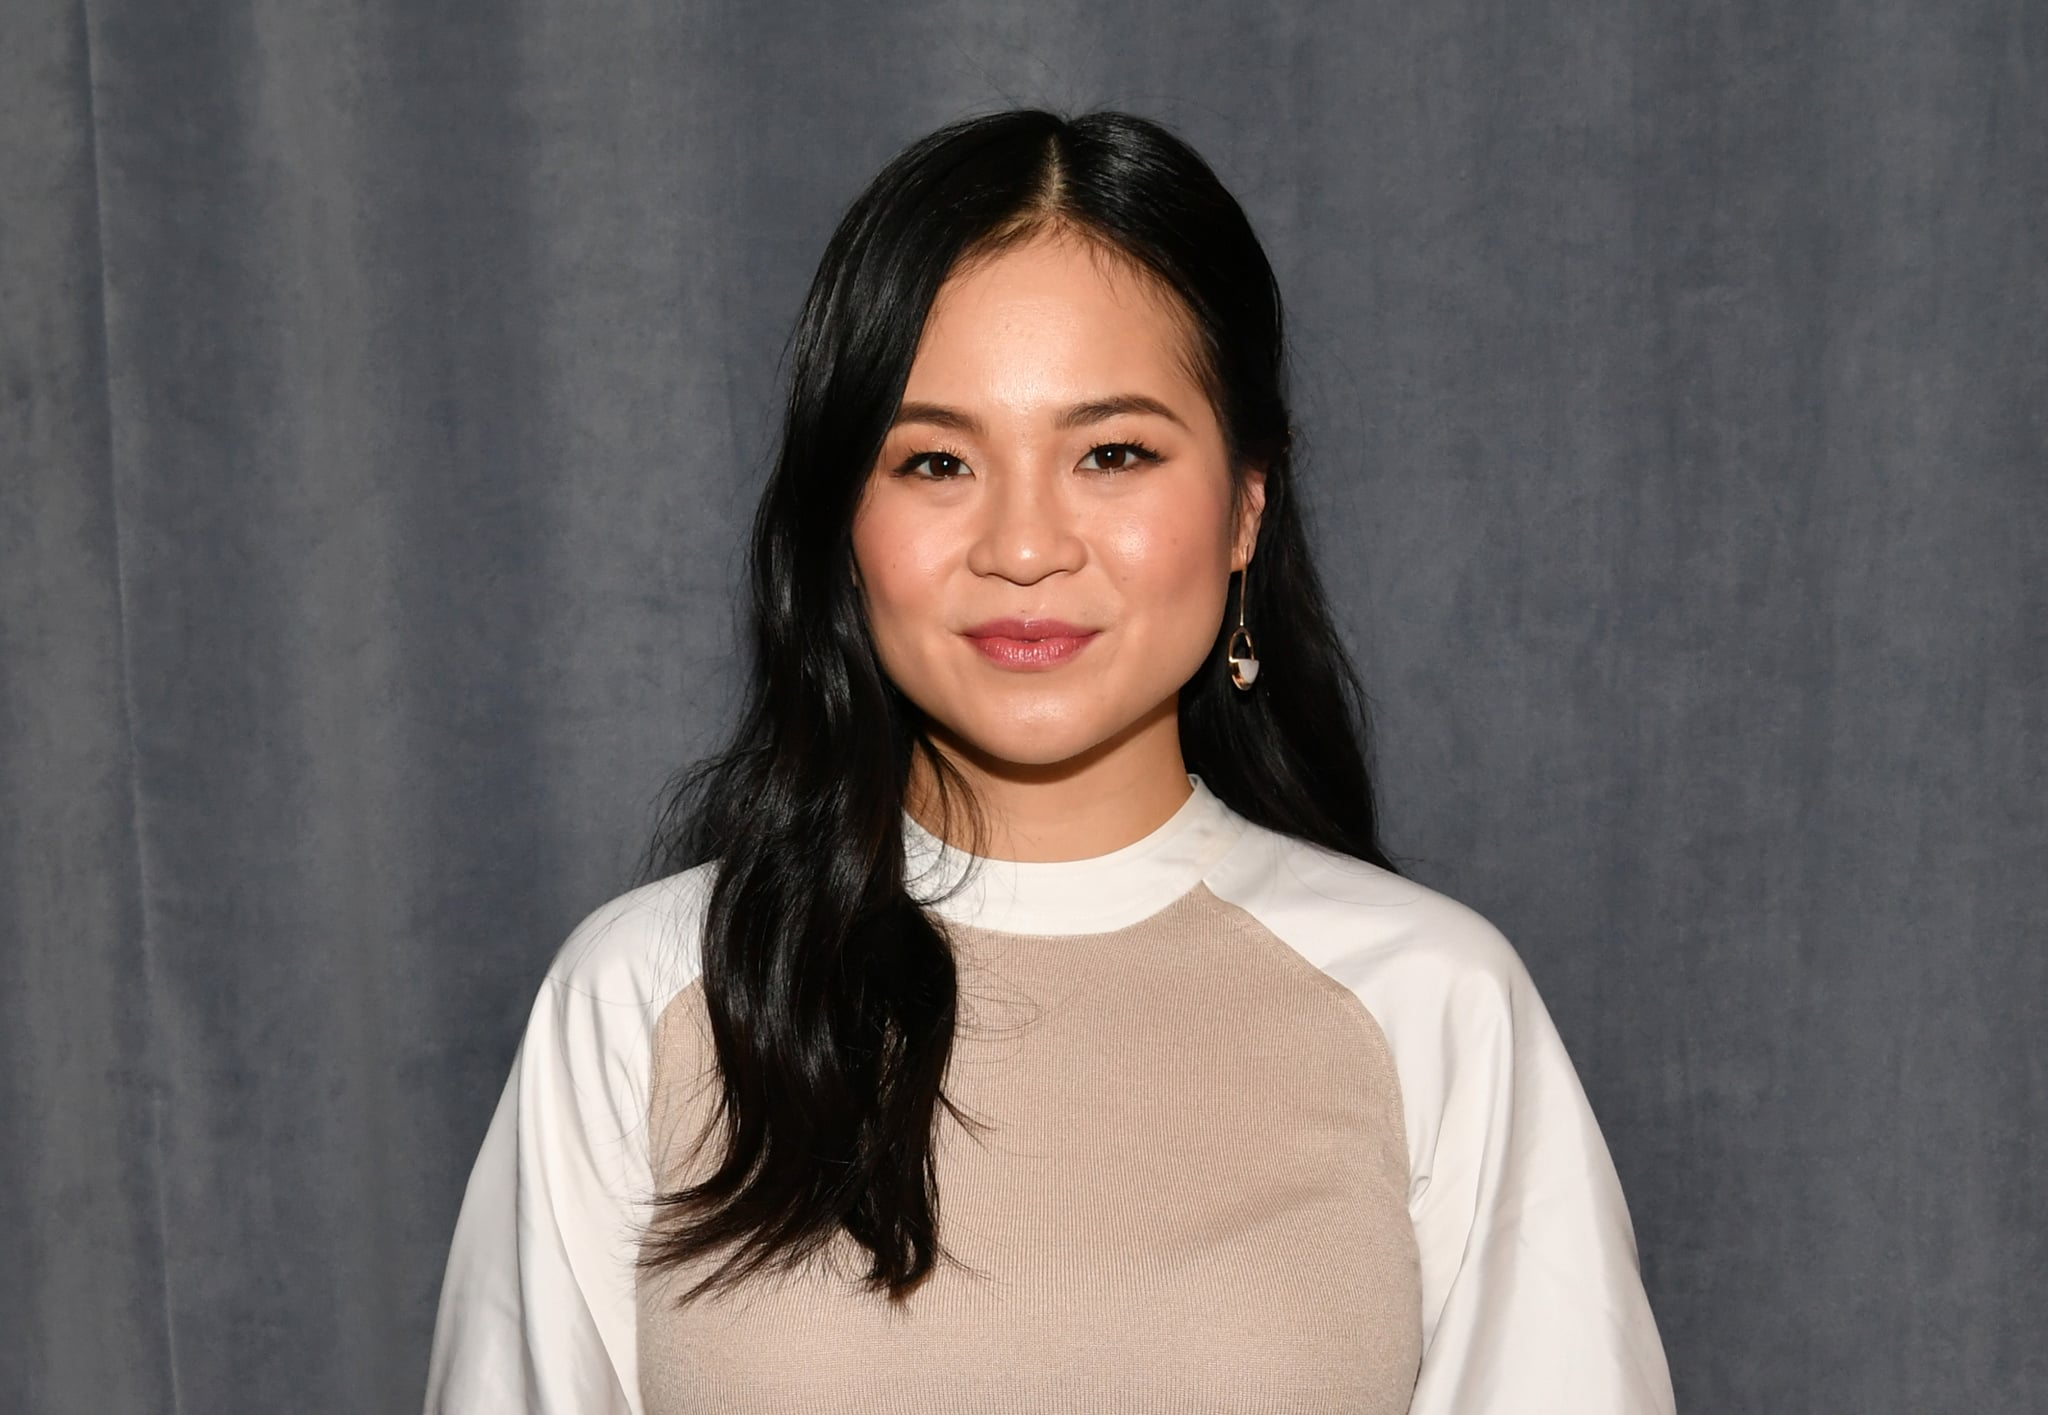 NEW YORK, NEW YORK - DECEMBER 09: (EXCLUSIVE COVERAGE)  Actress Kelly Marie Tran visits SiriusXM Studios on December 09, 2019 in New York City. (Photo by Slaven Vlasic/Getty Images)